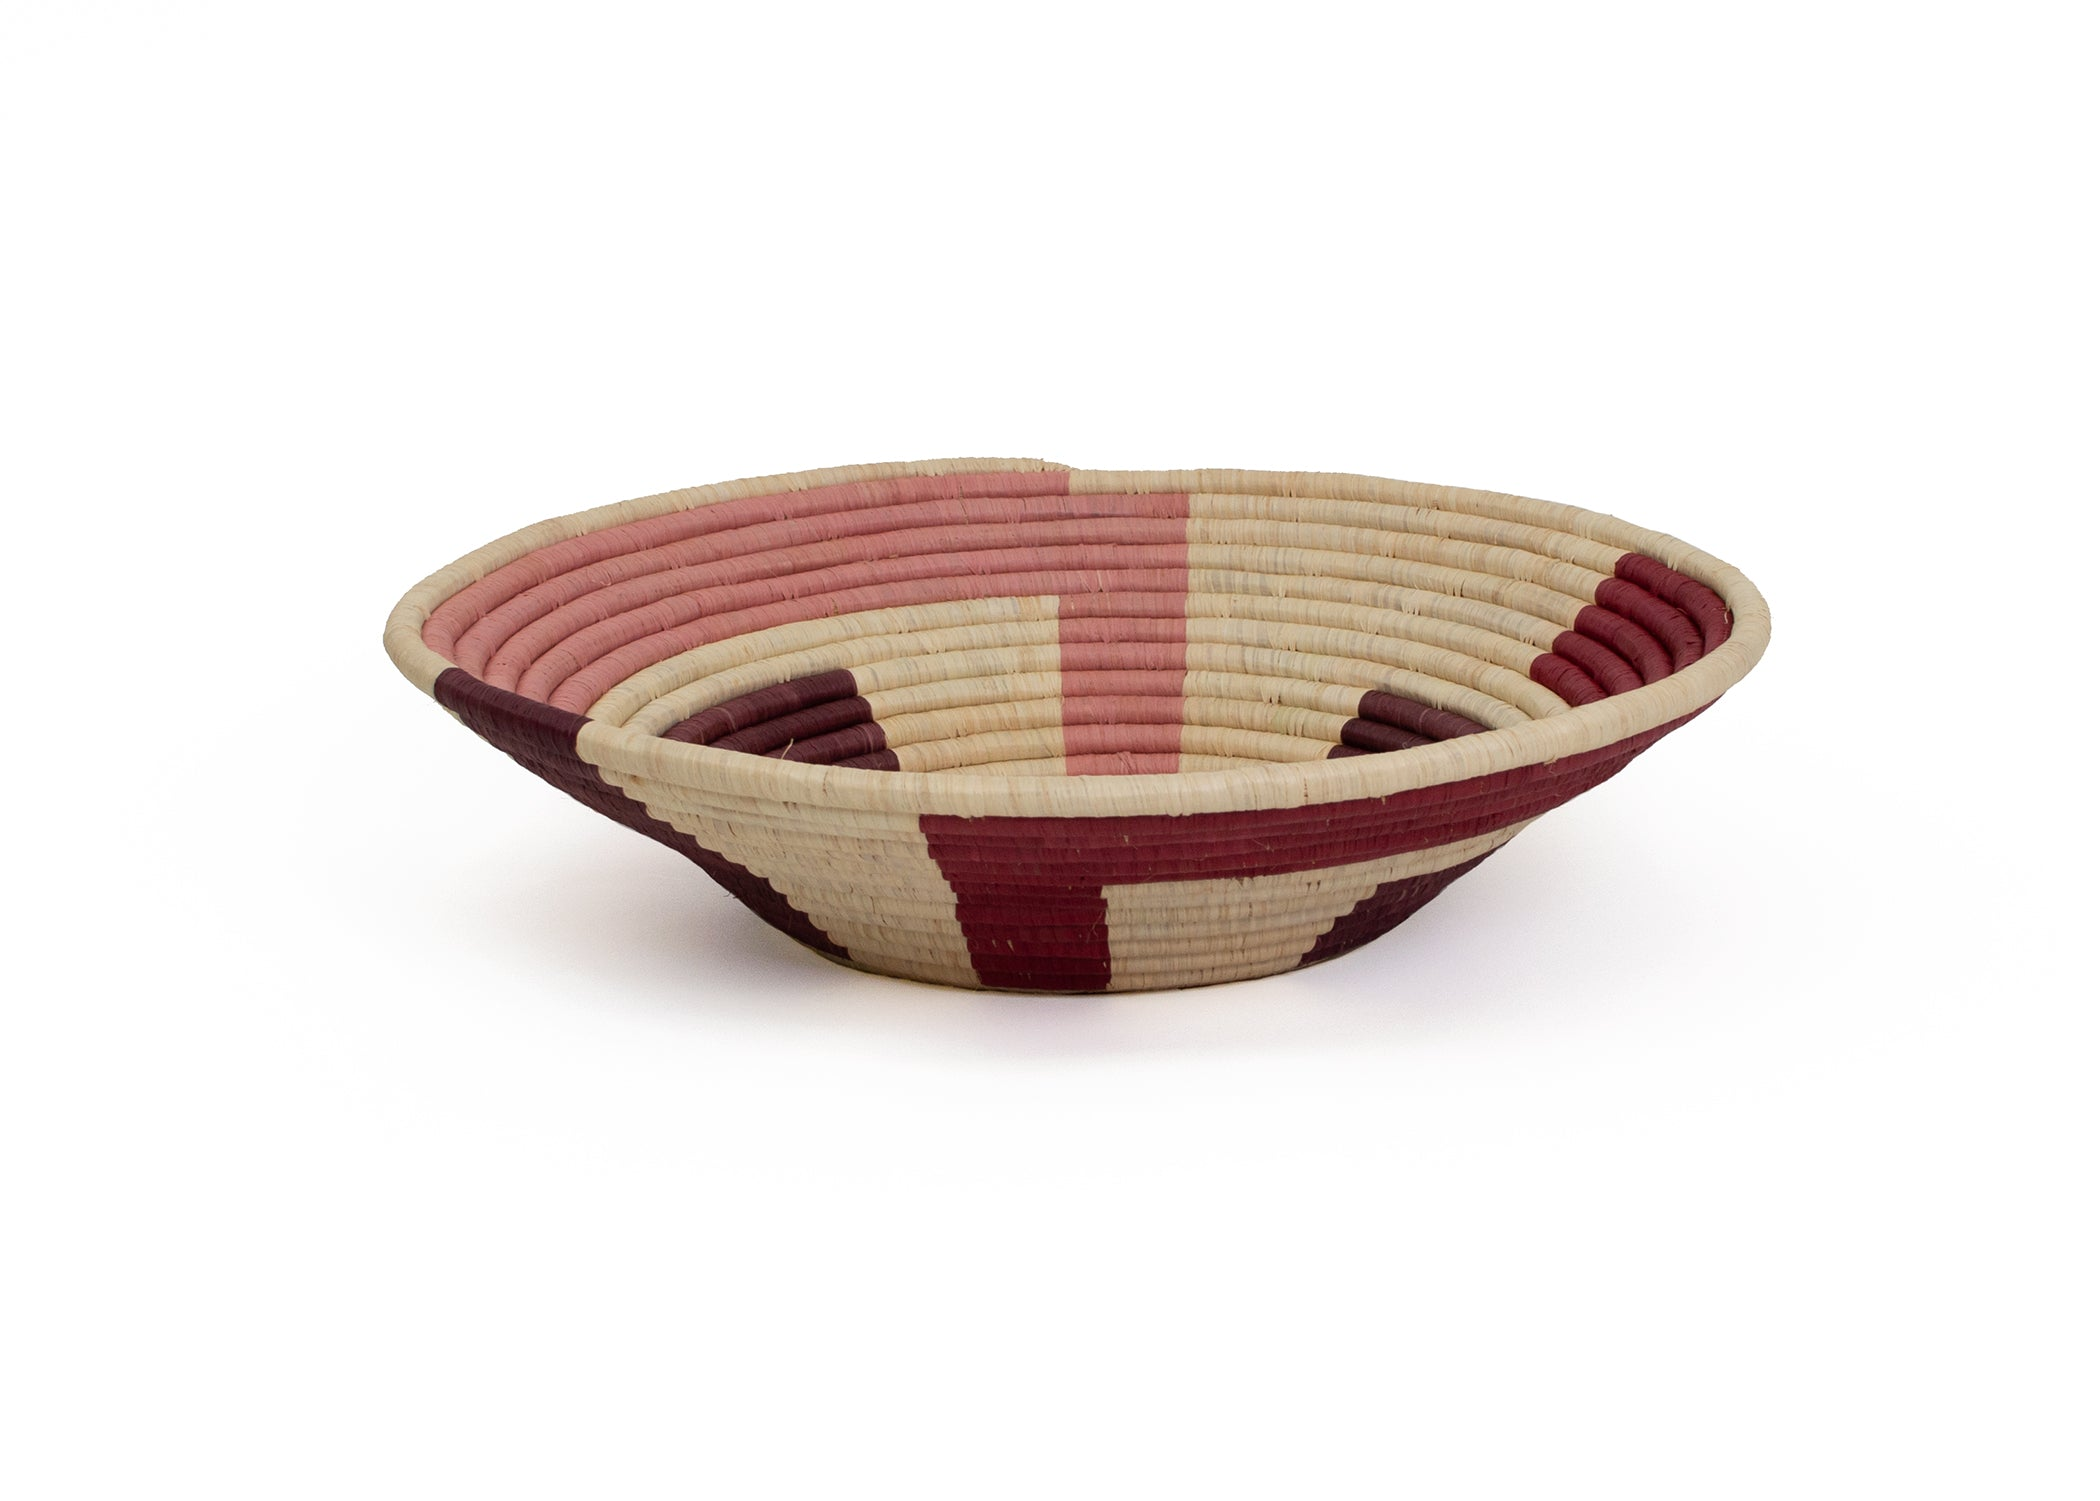 Blossom Maze Jumbo Bowl - KAZI - Artisan made high quality home decor and wall art